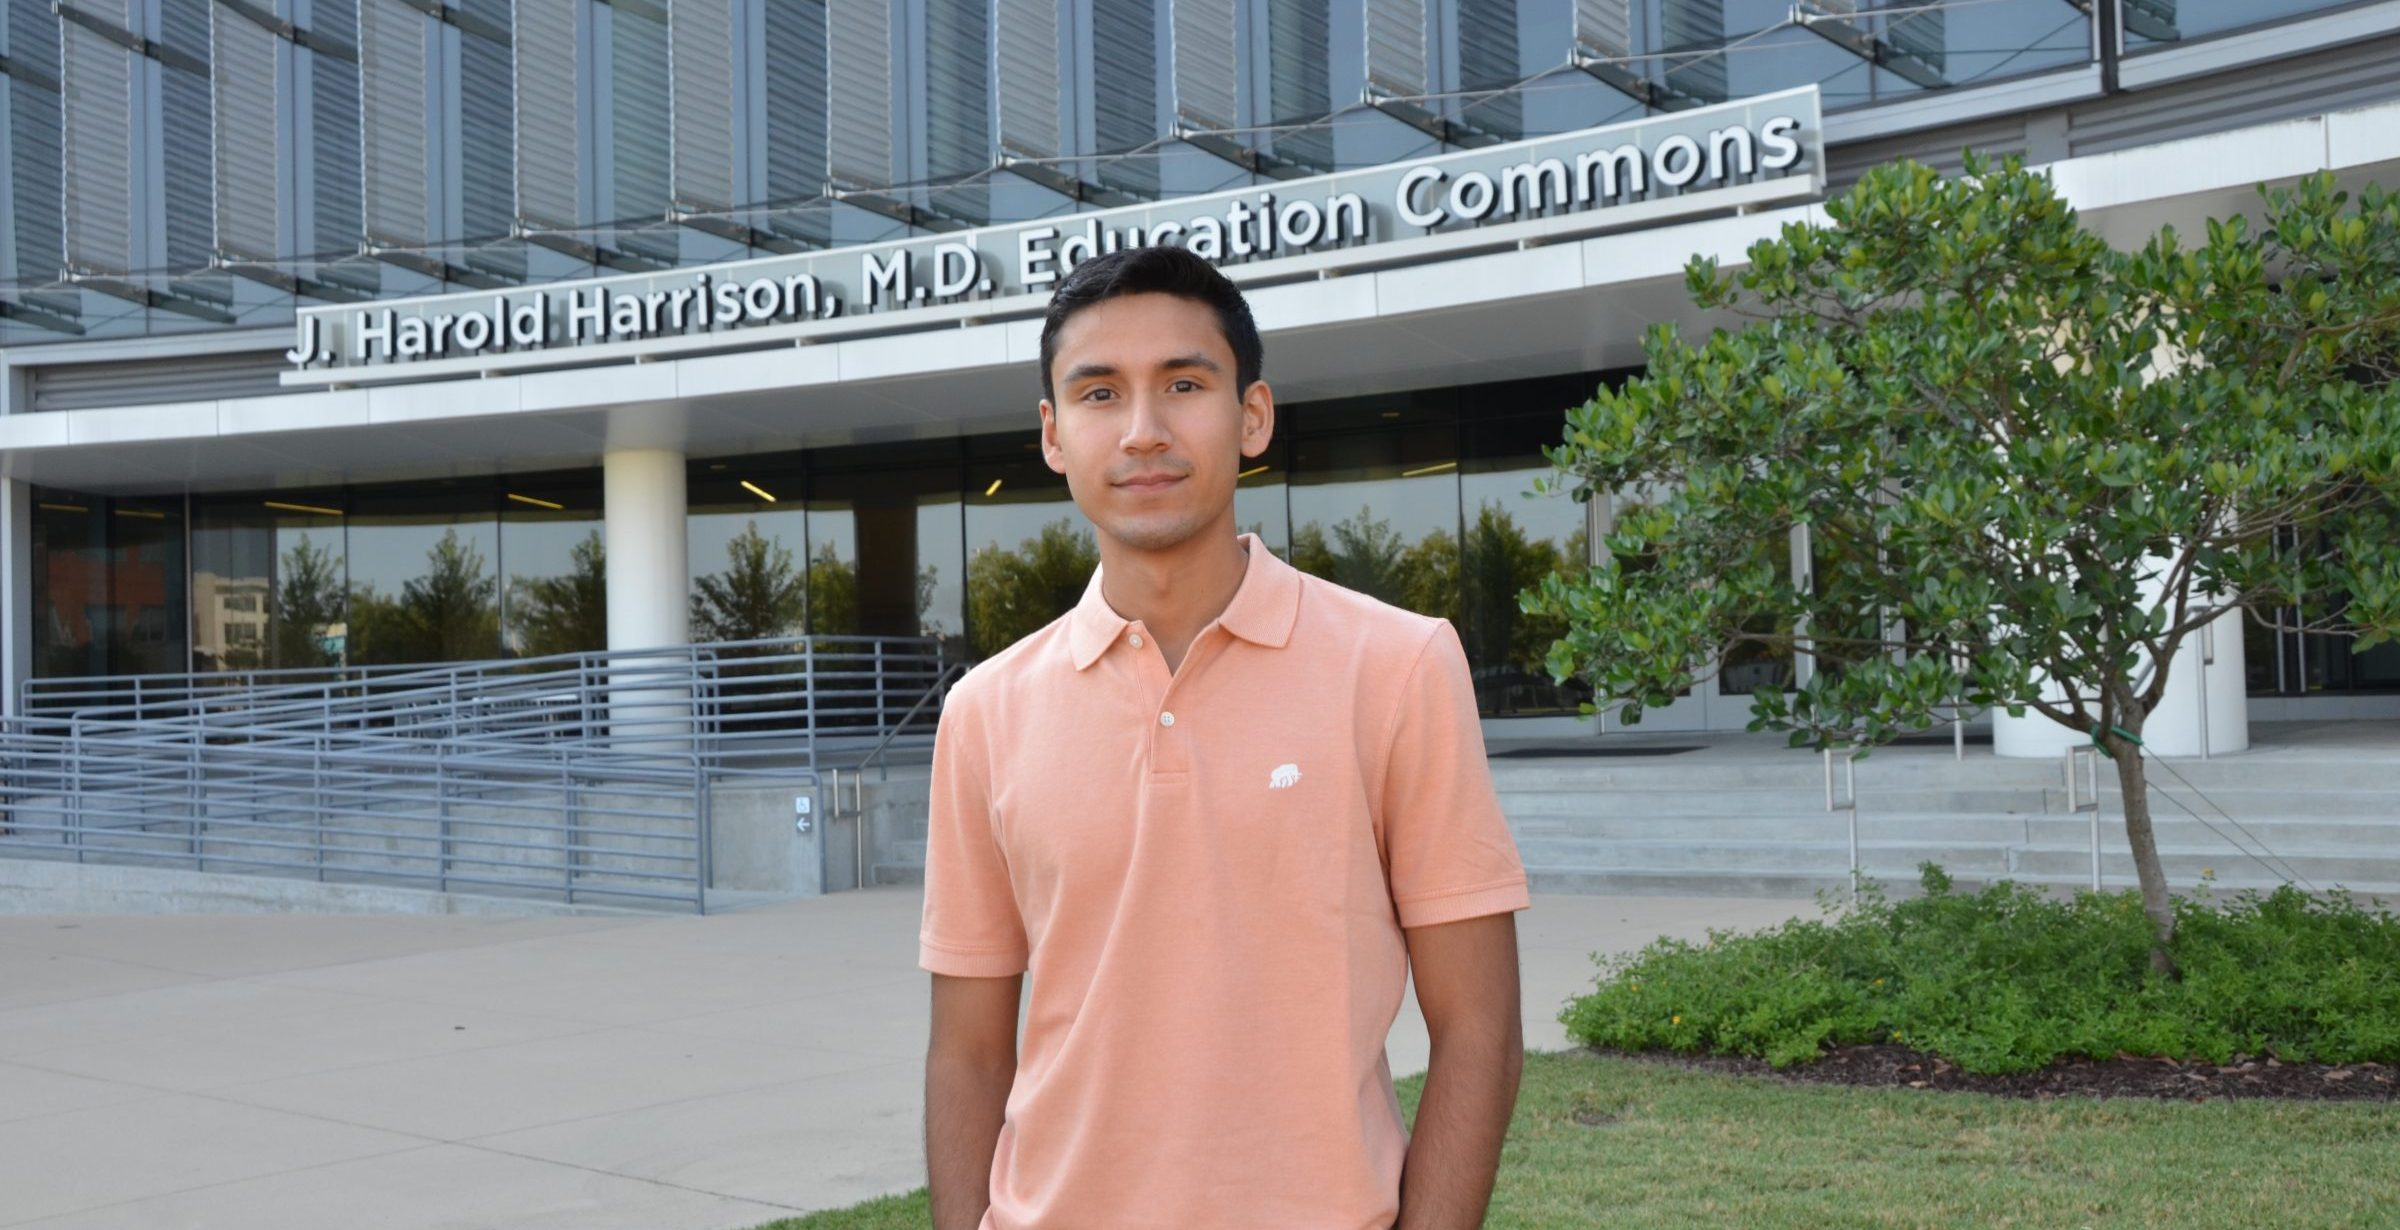 Student standing in front of building.